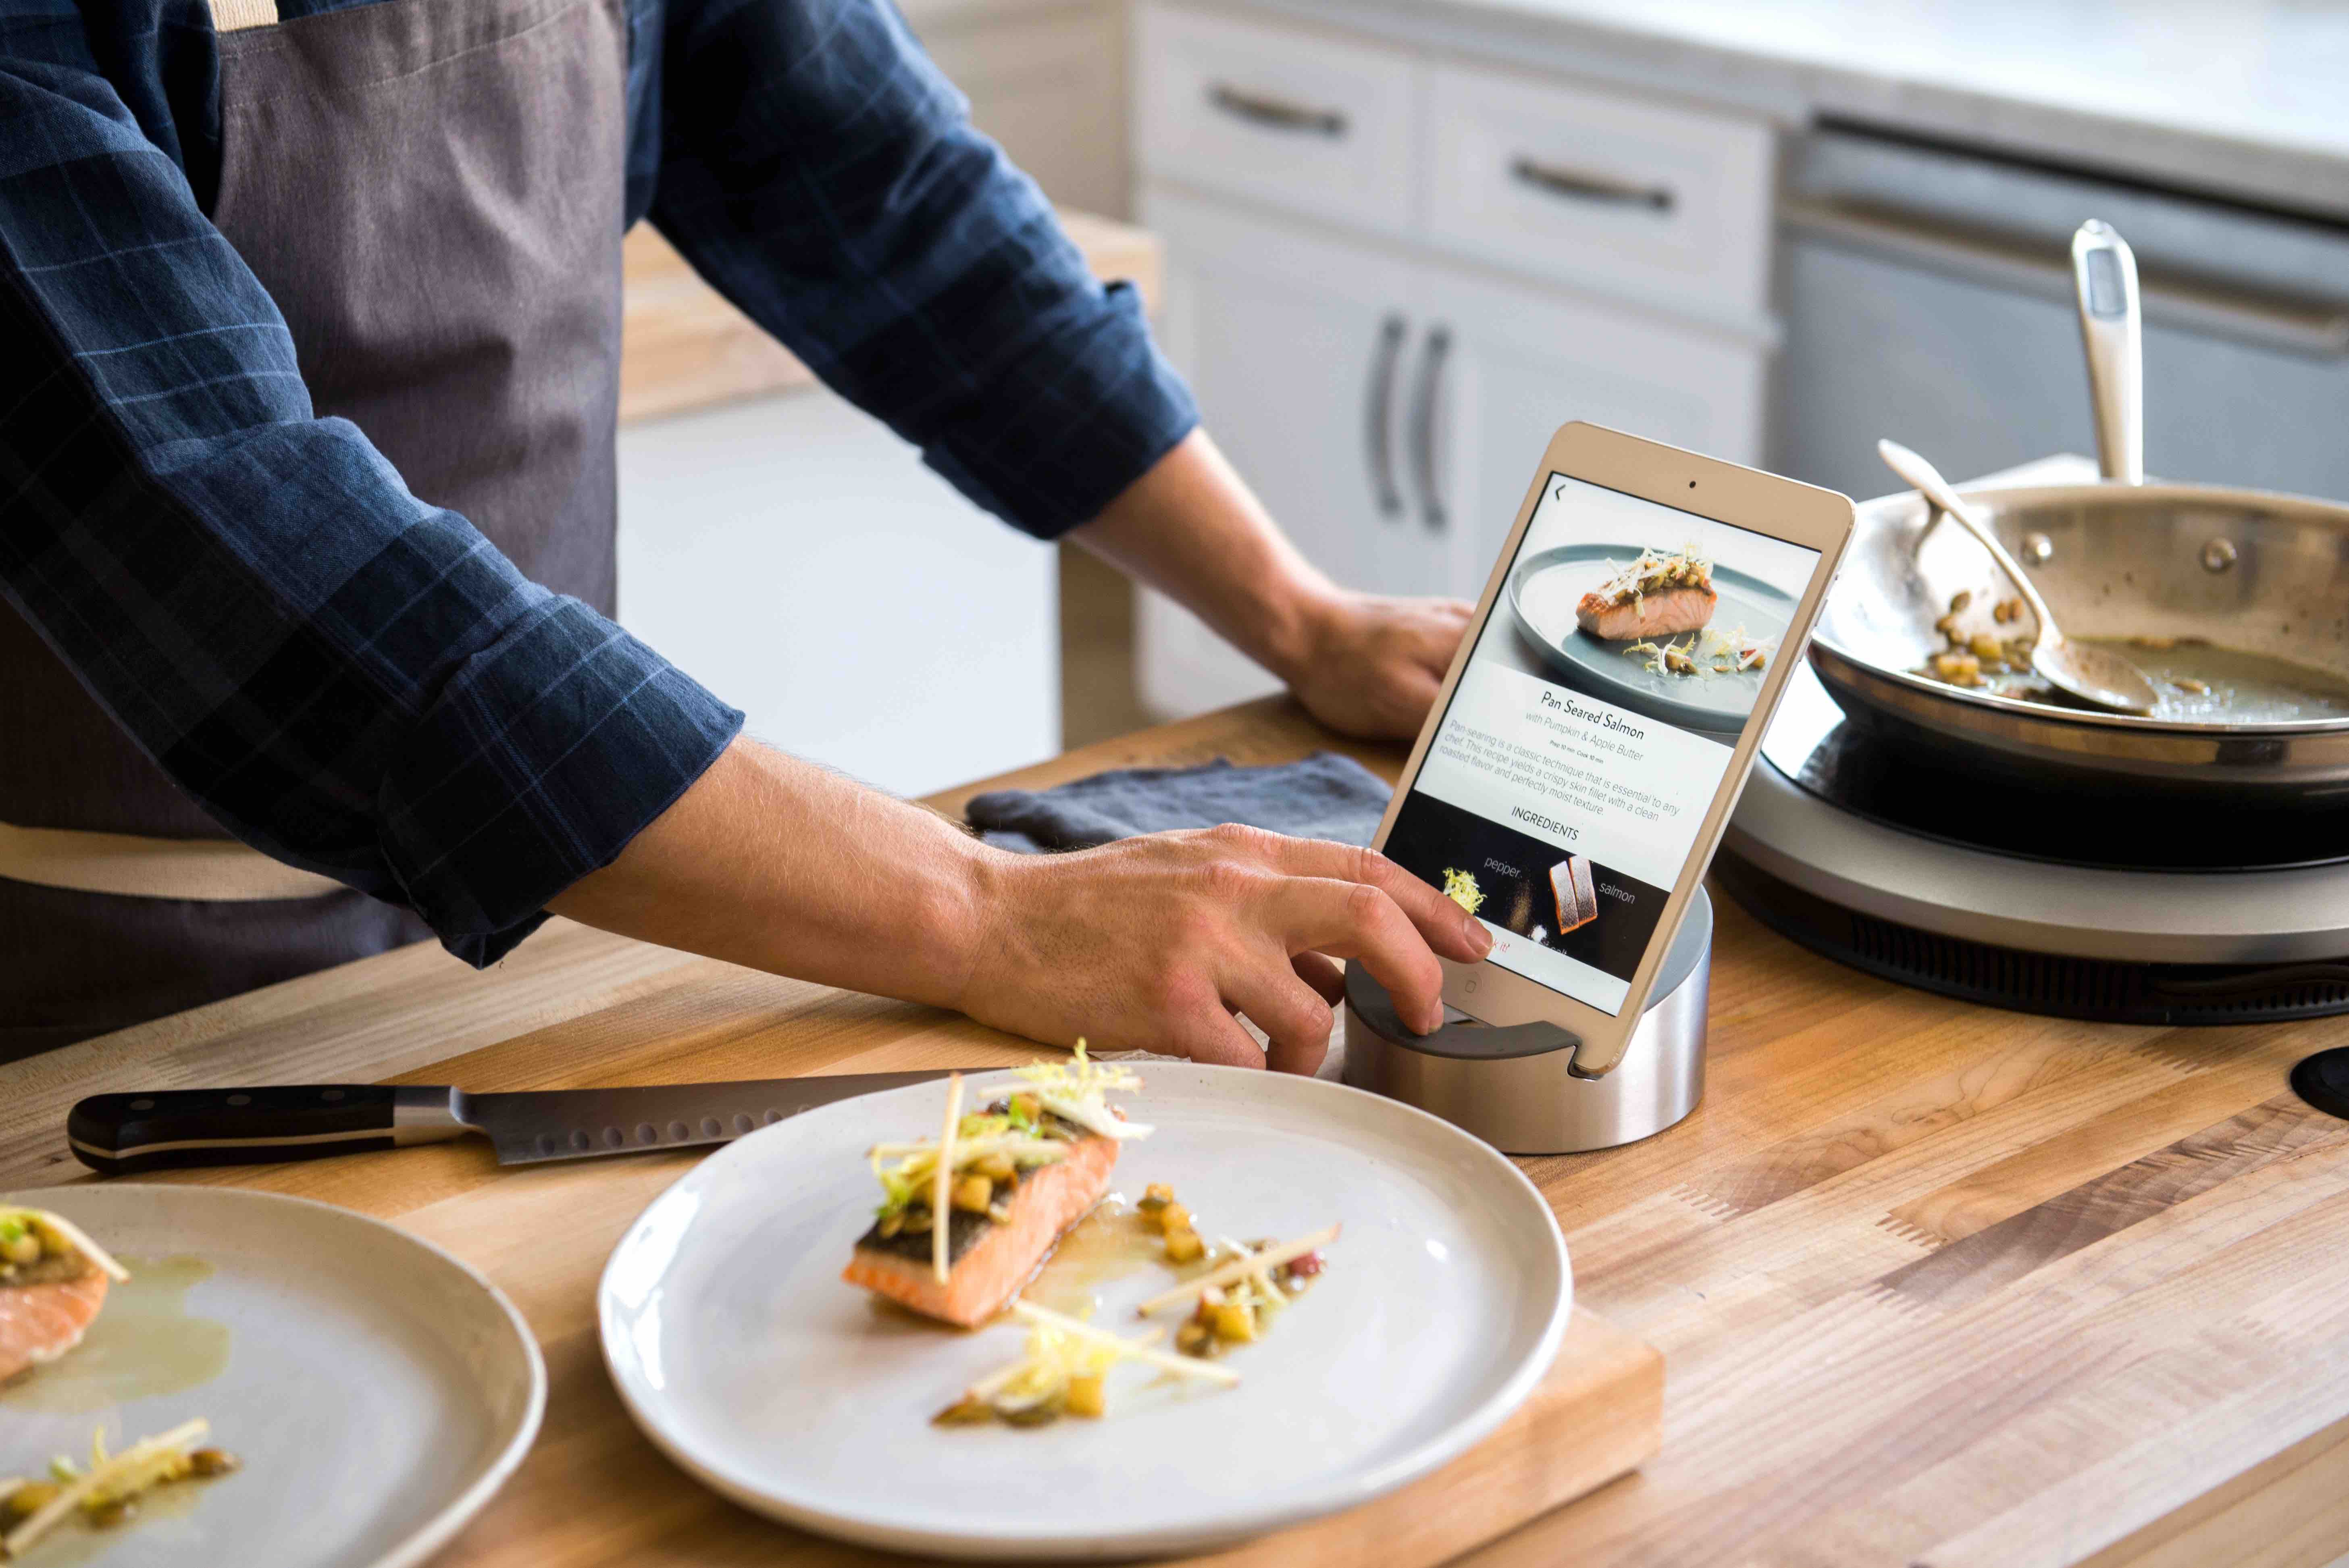 3 Smart Kitchen Gadgets To Take The Guesswork Out Of